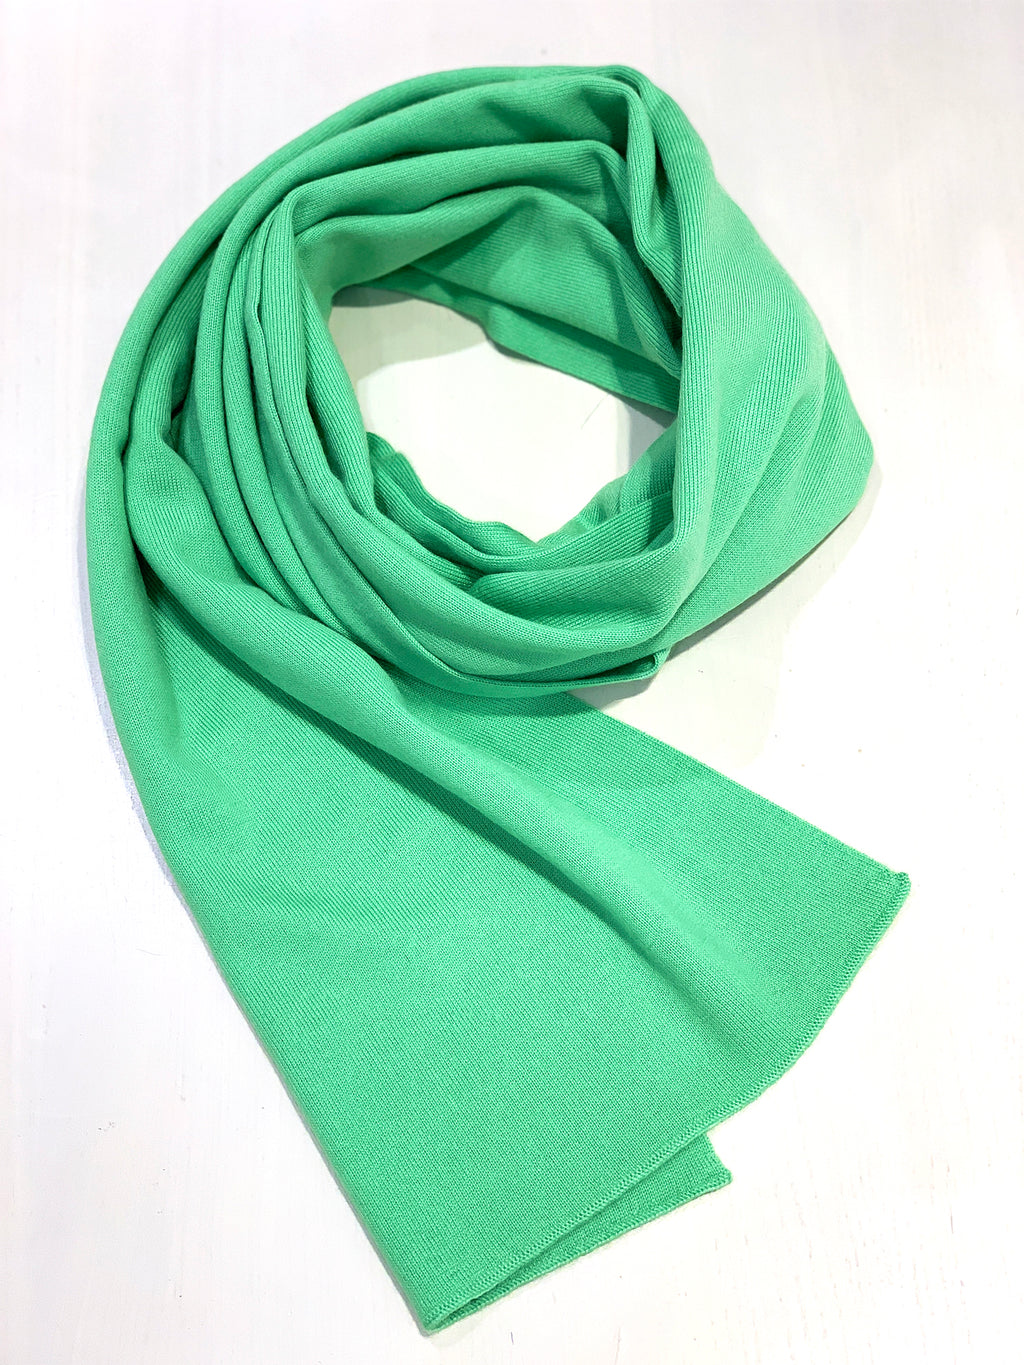 100% Cashmere Scarf - Chartreuse Green